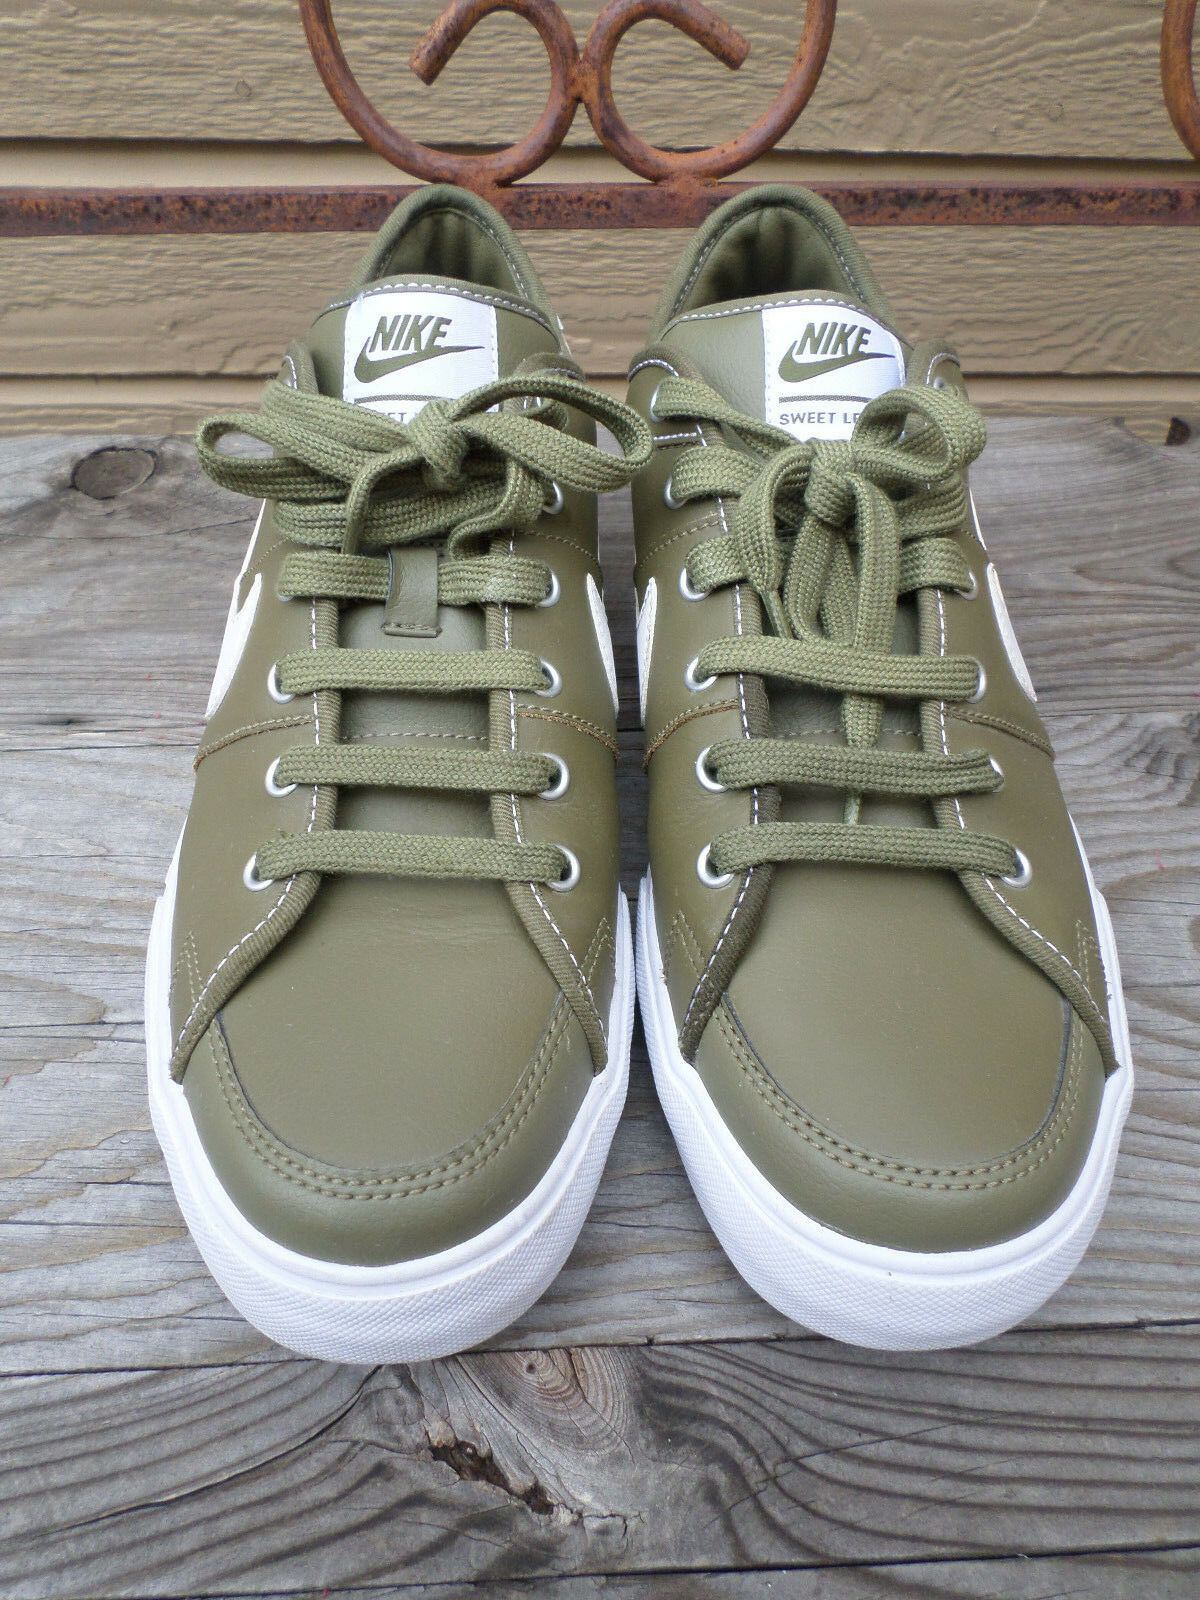 Nike Sweet Legacy (429873-201) Olive Green Leather Shoes Men's 11 (eur 45)